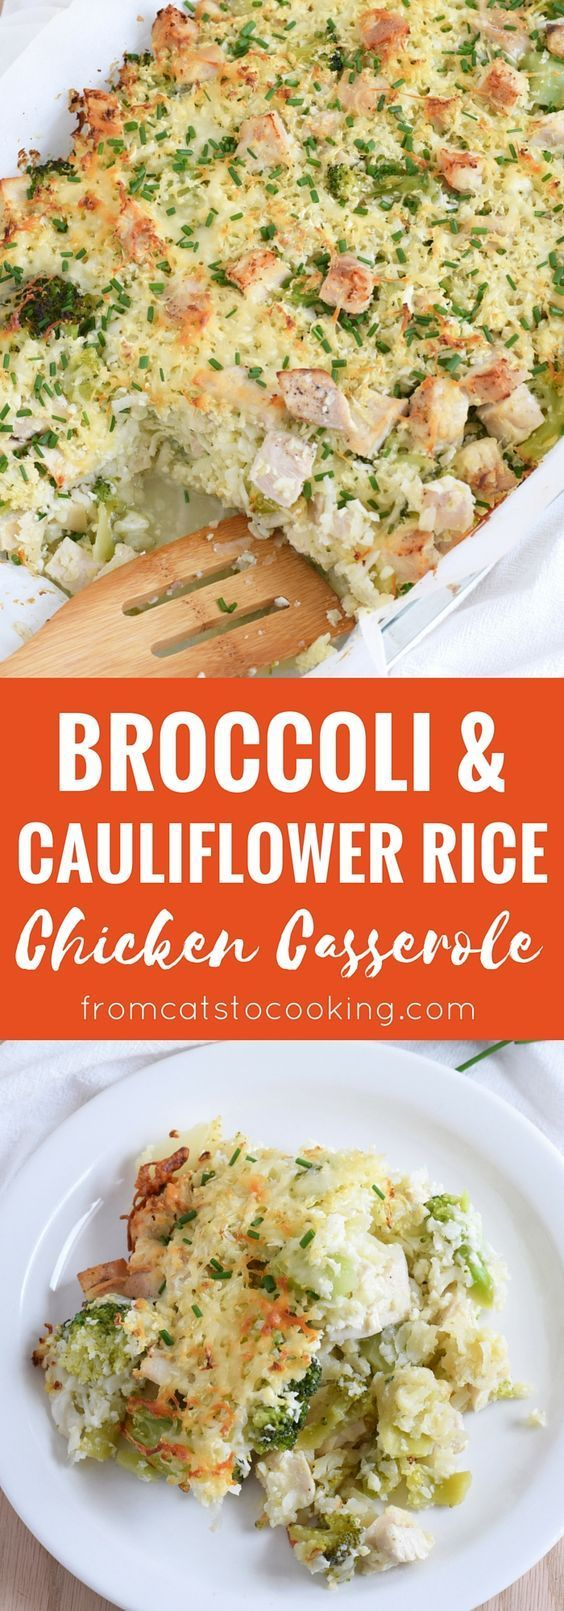 A healthy and cheesy broccoli and cauliflower rice chicken casserole that is perfect for dinner and makes great leftovers. Gluten free, grain free & paleo! // http://fromcatstocooking.com